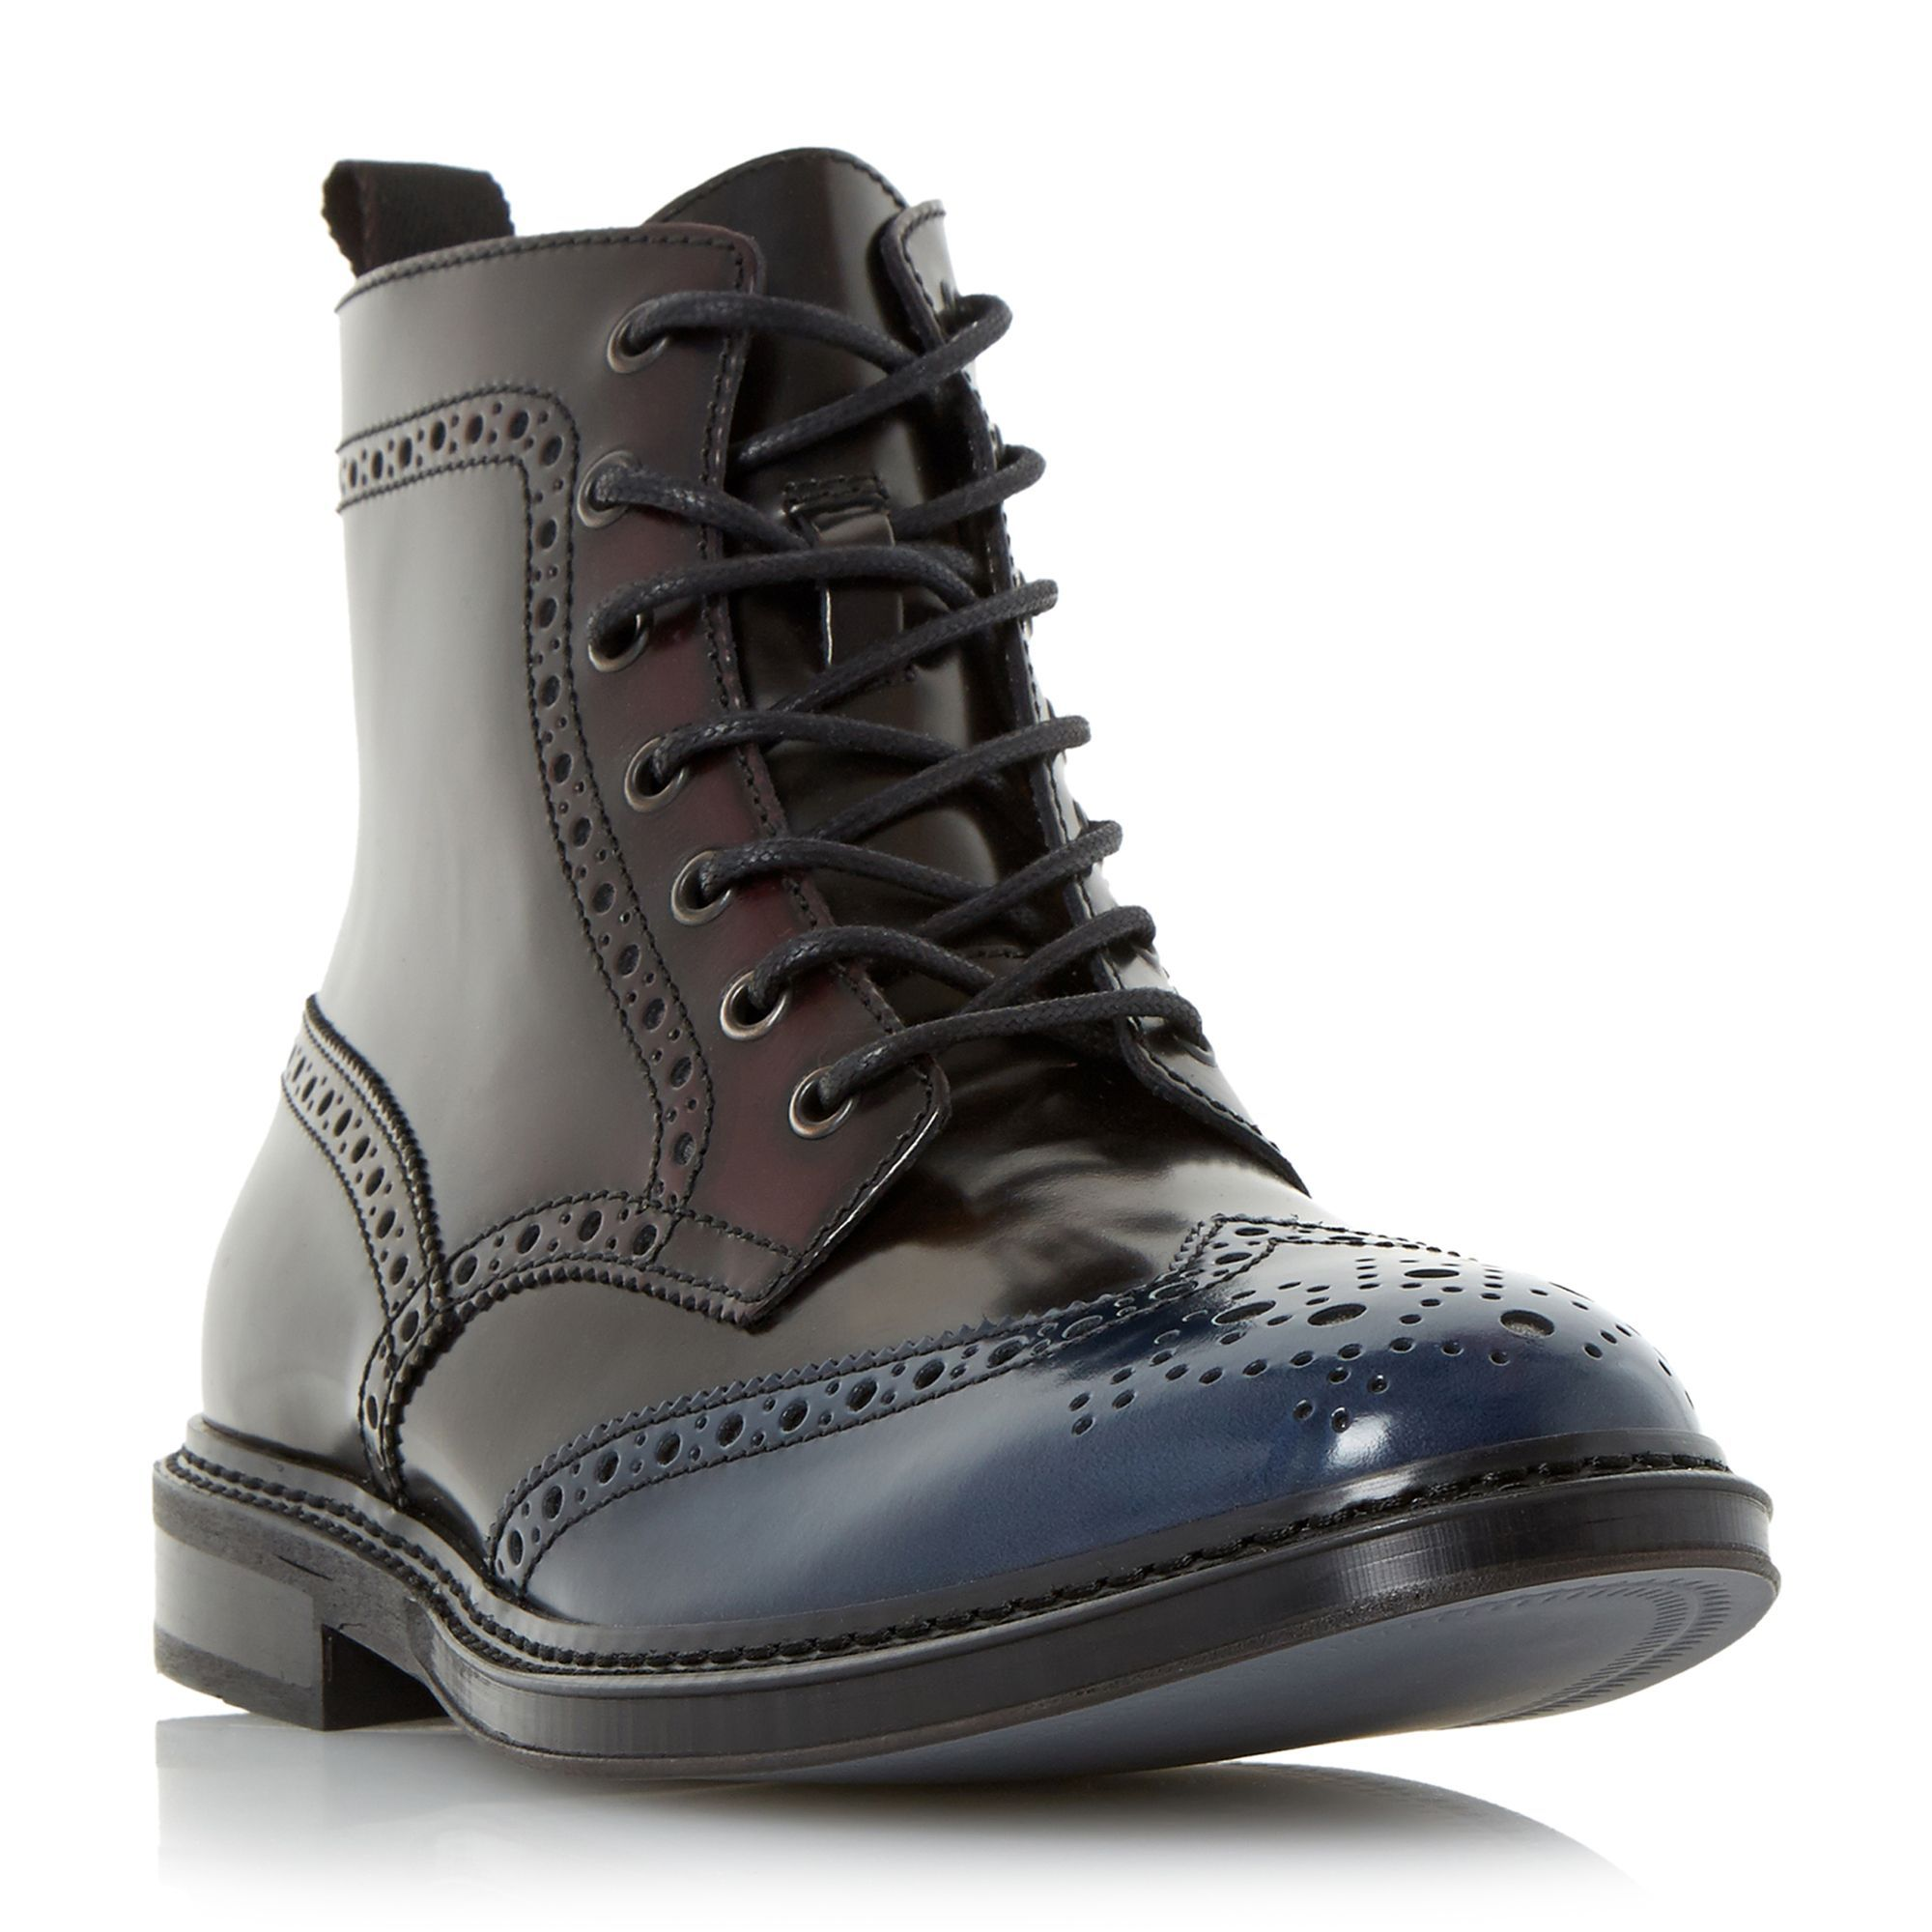 Dune Cruncher lace up brogue boots, Multi-Coloured